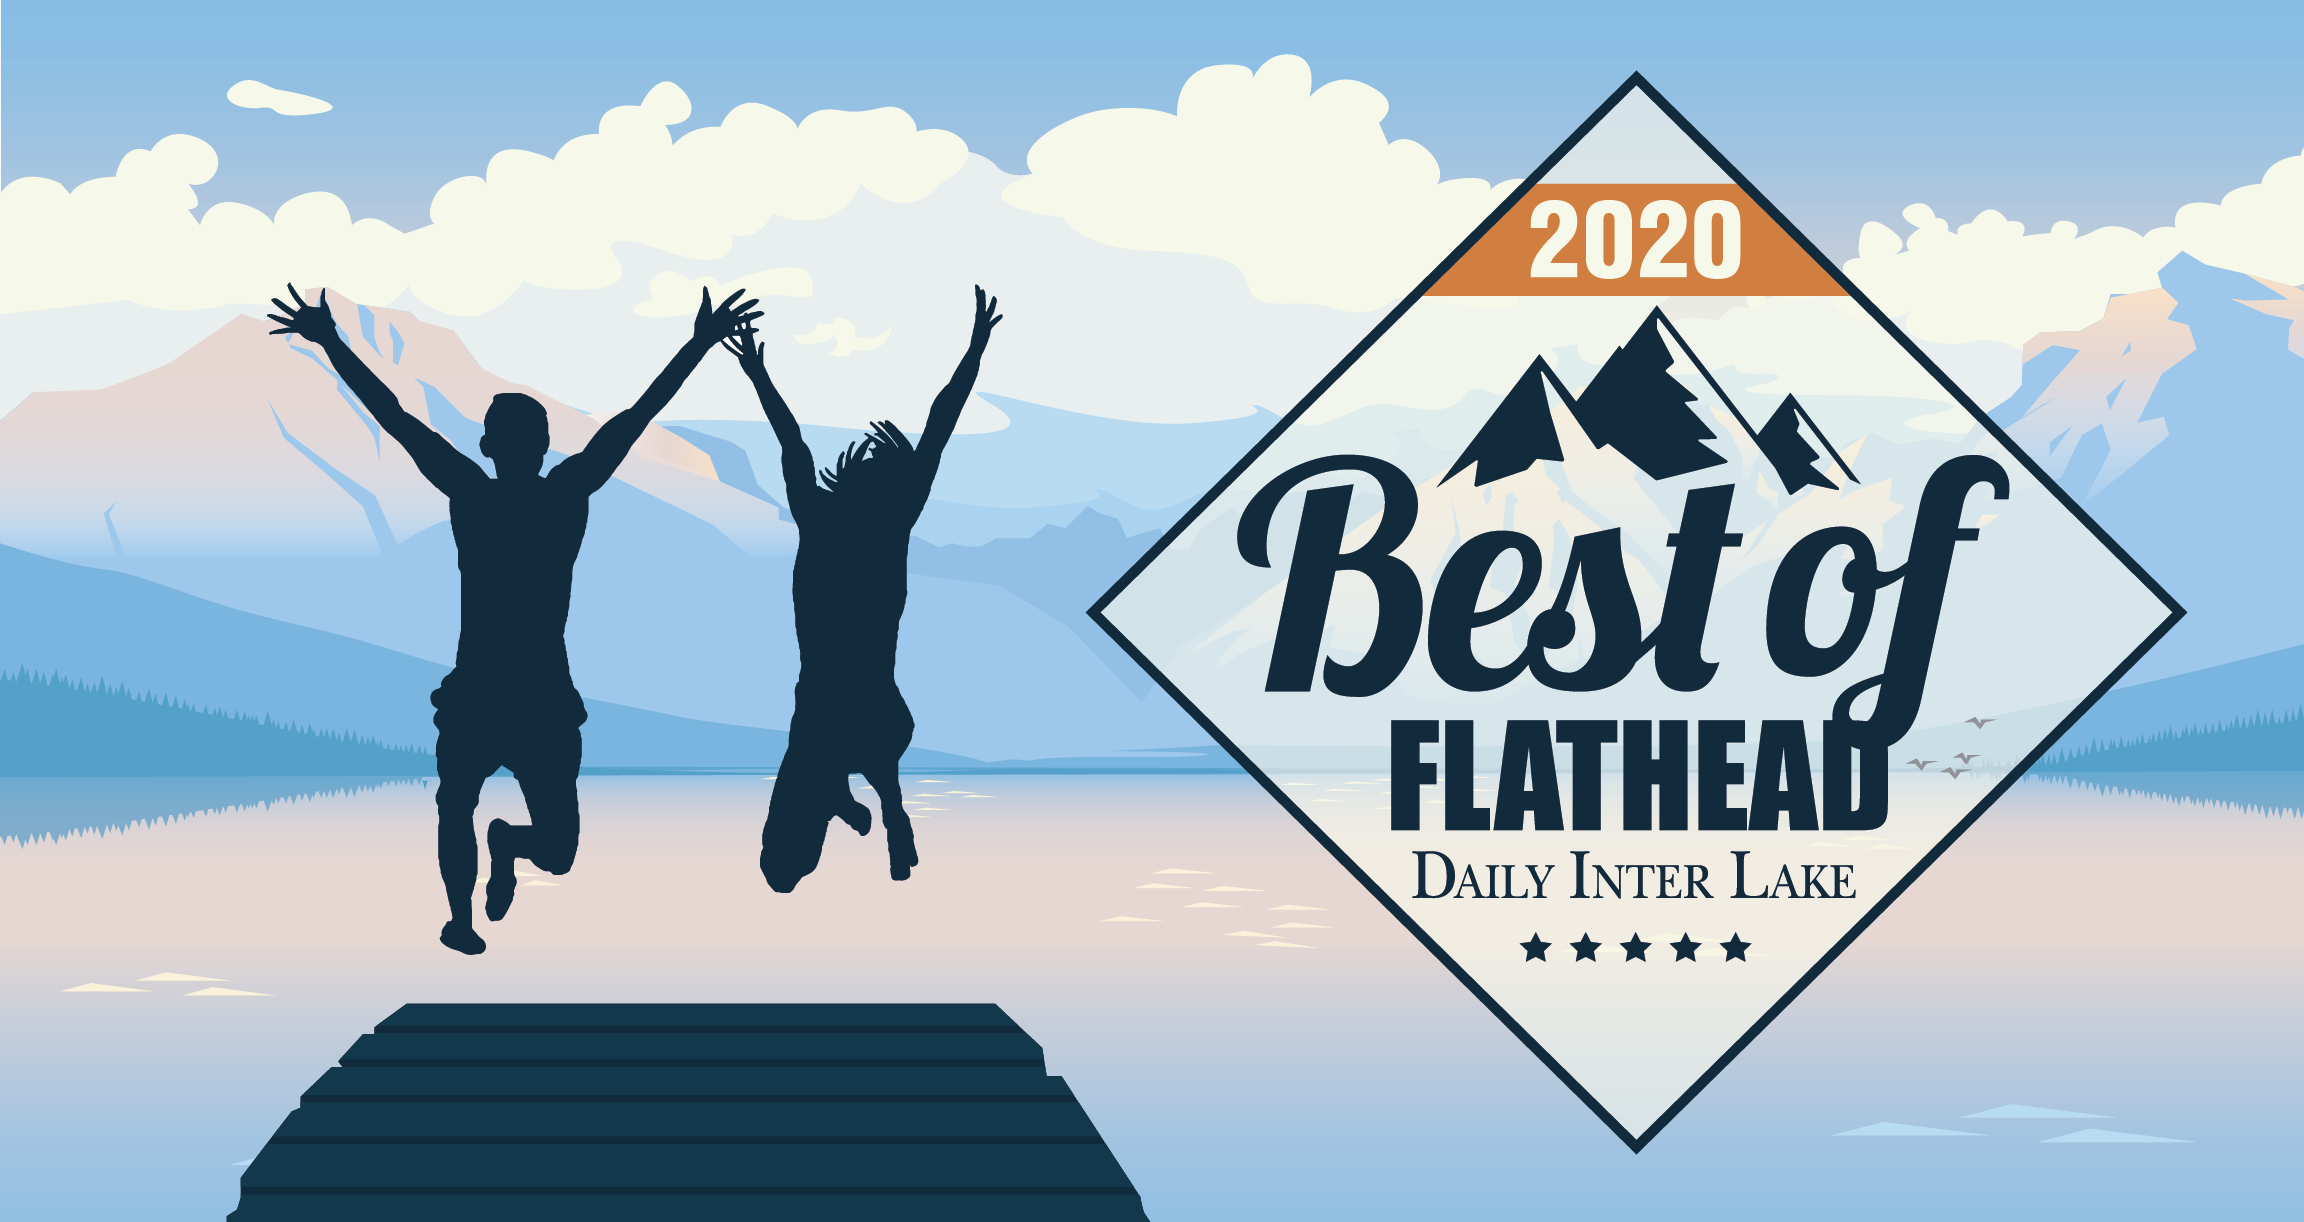 2020 Best of the Flathead Award